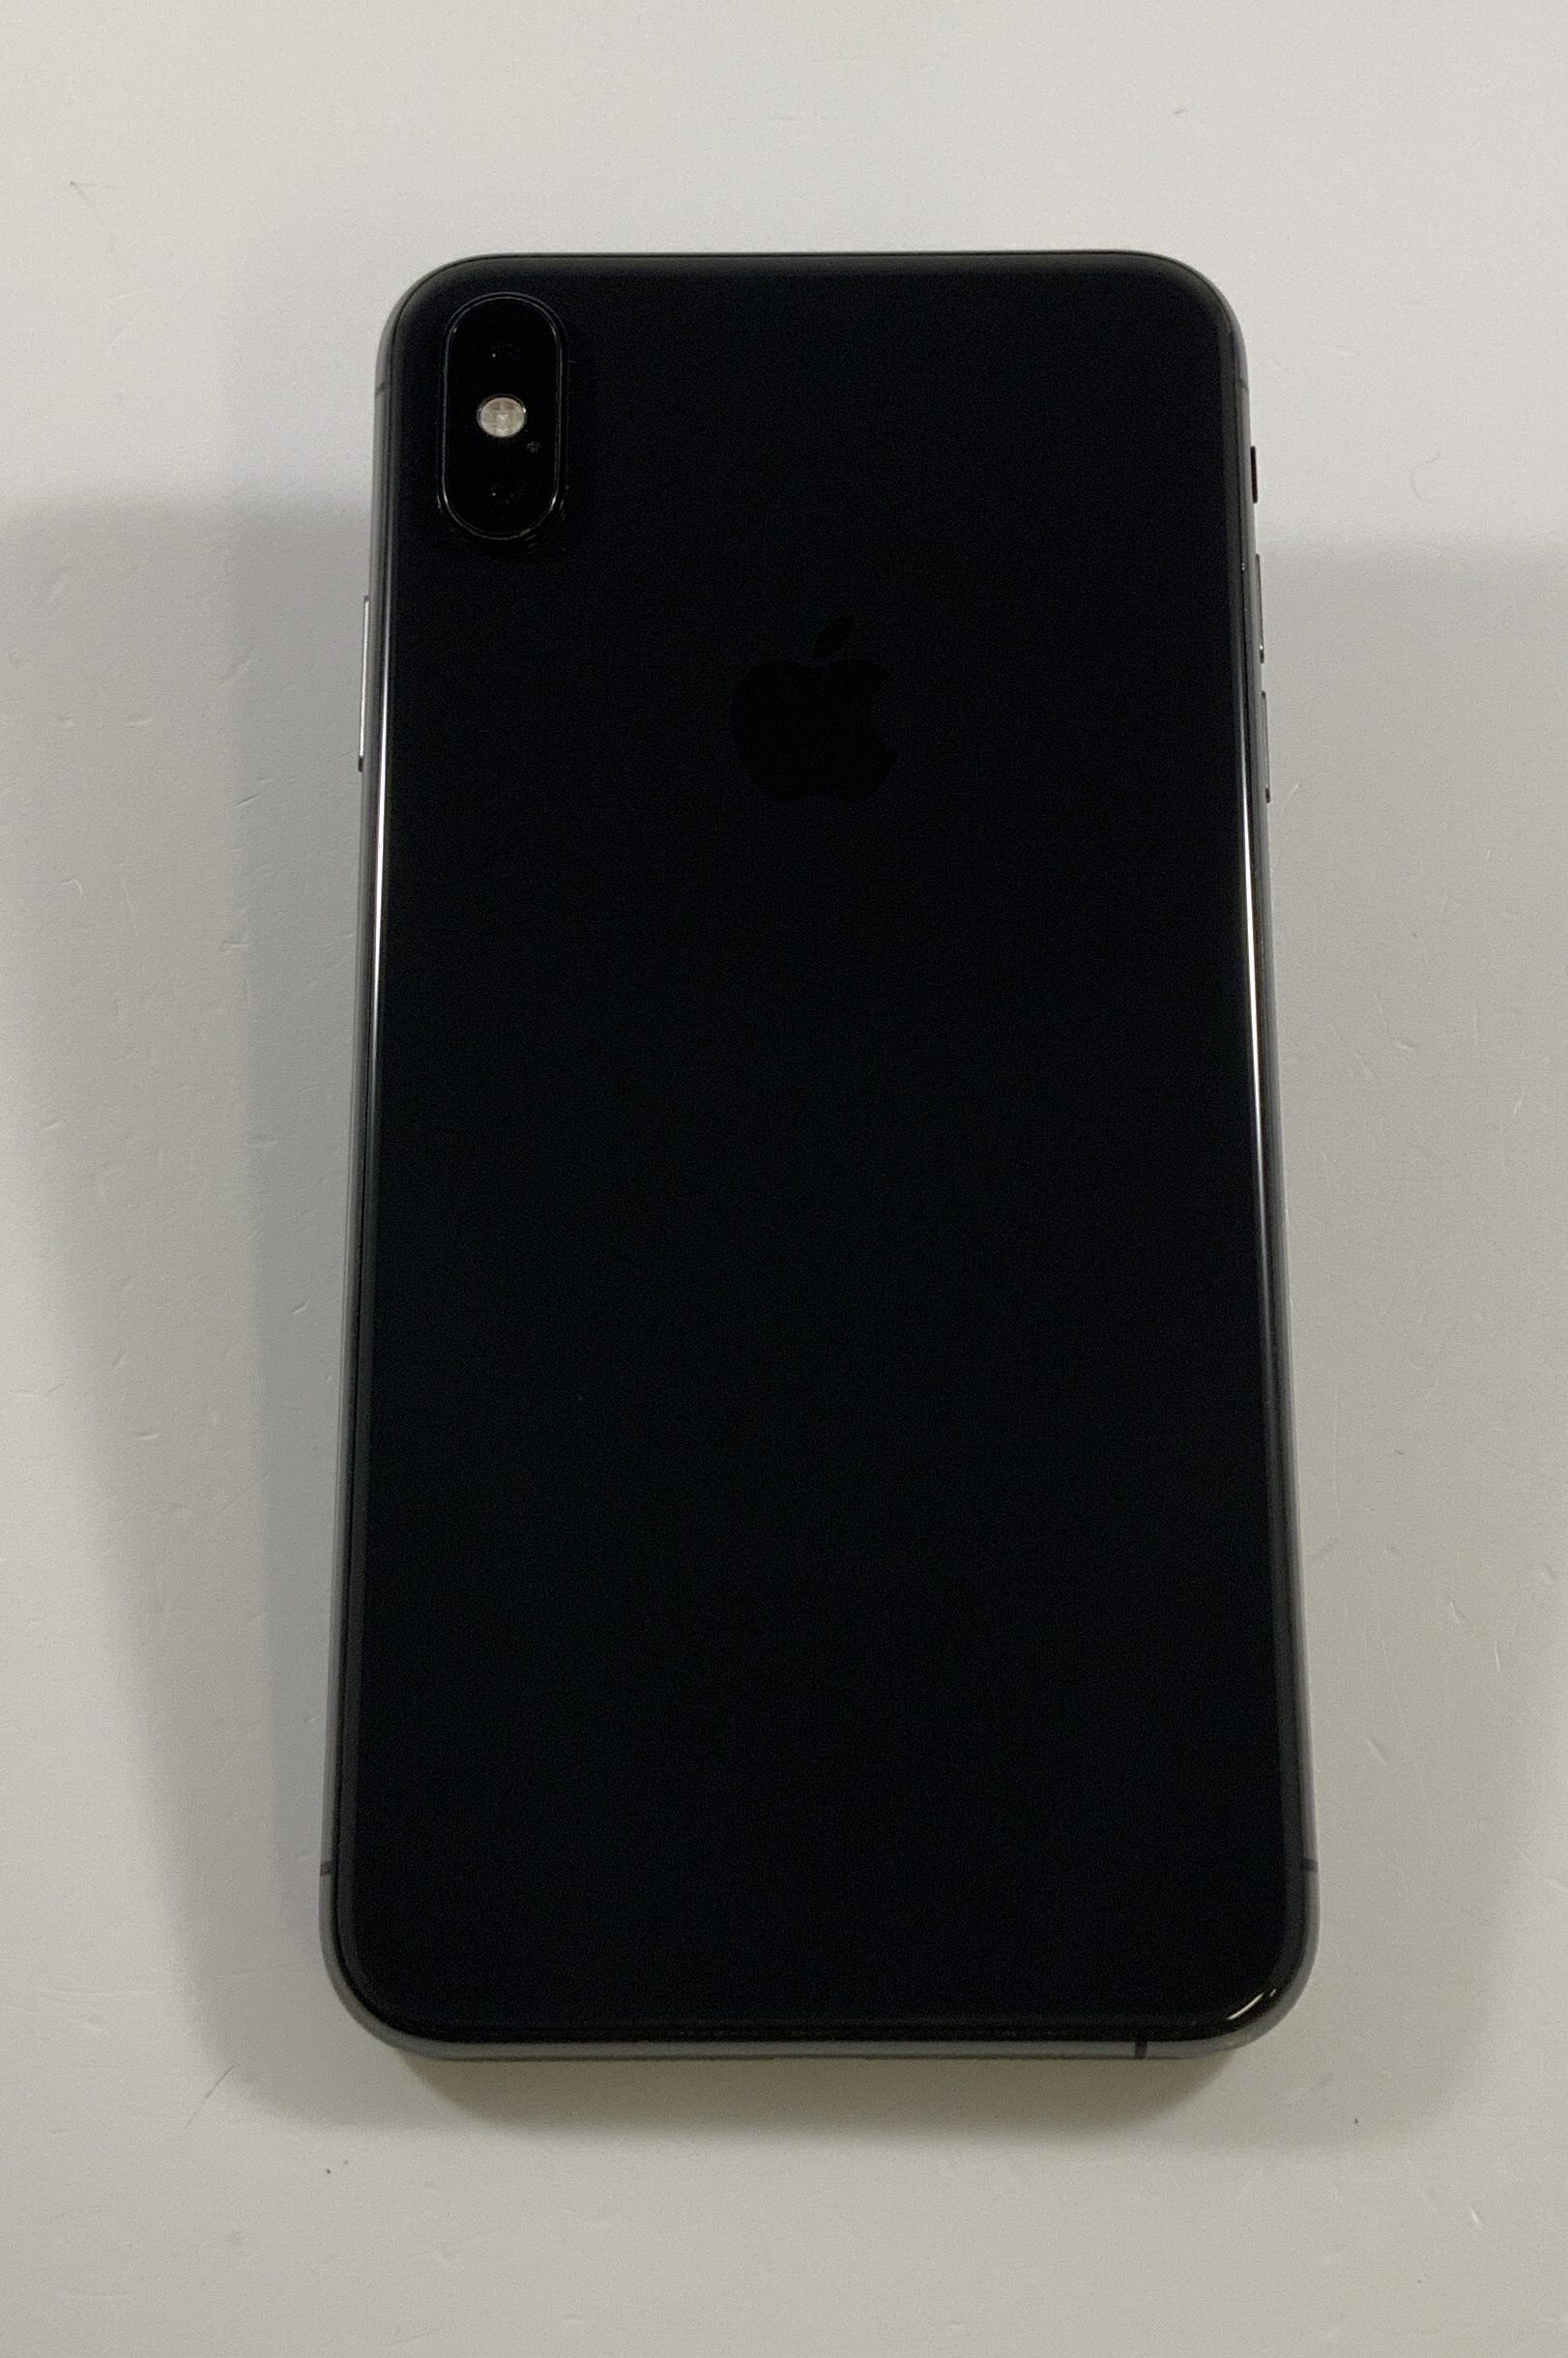 iPhone XS Max 64GB, 64GB, Space Gray, image 2